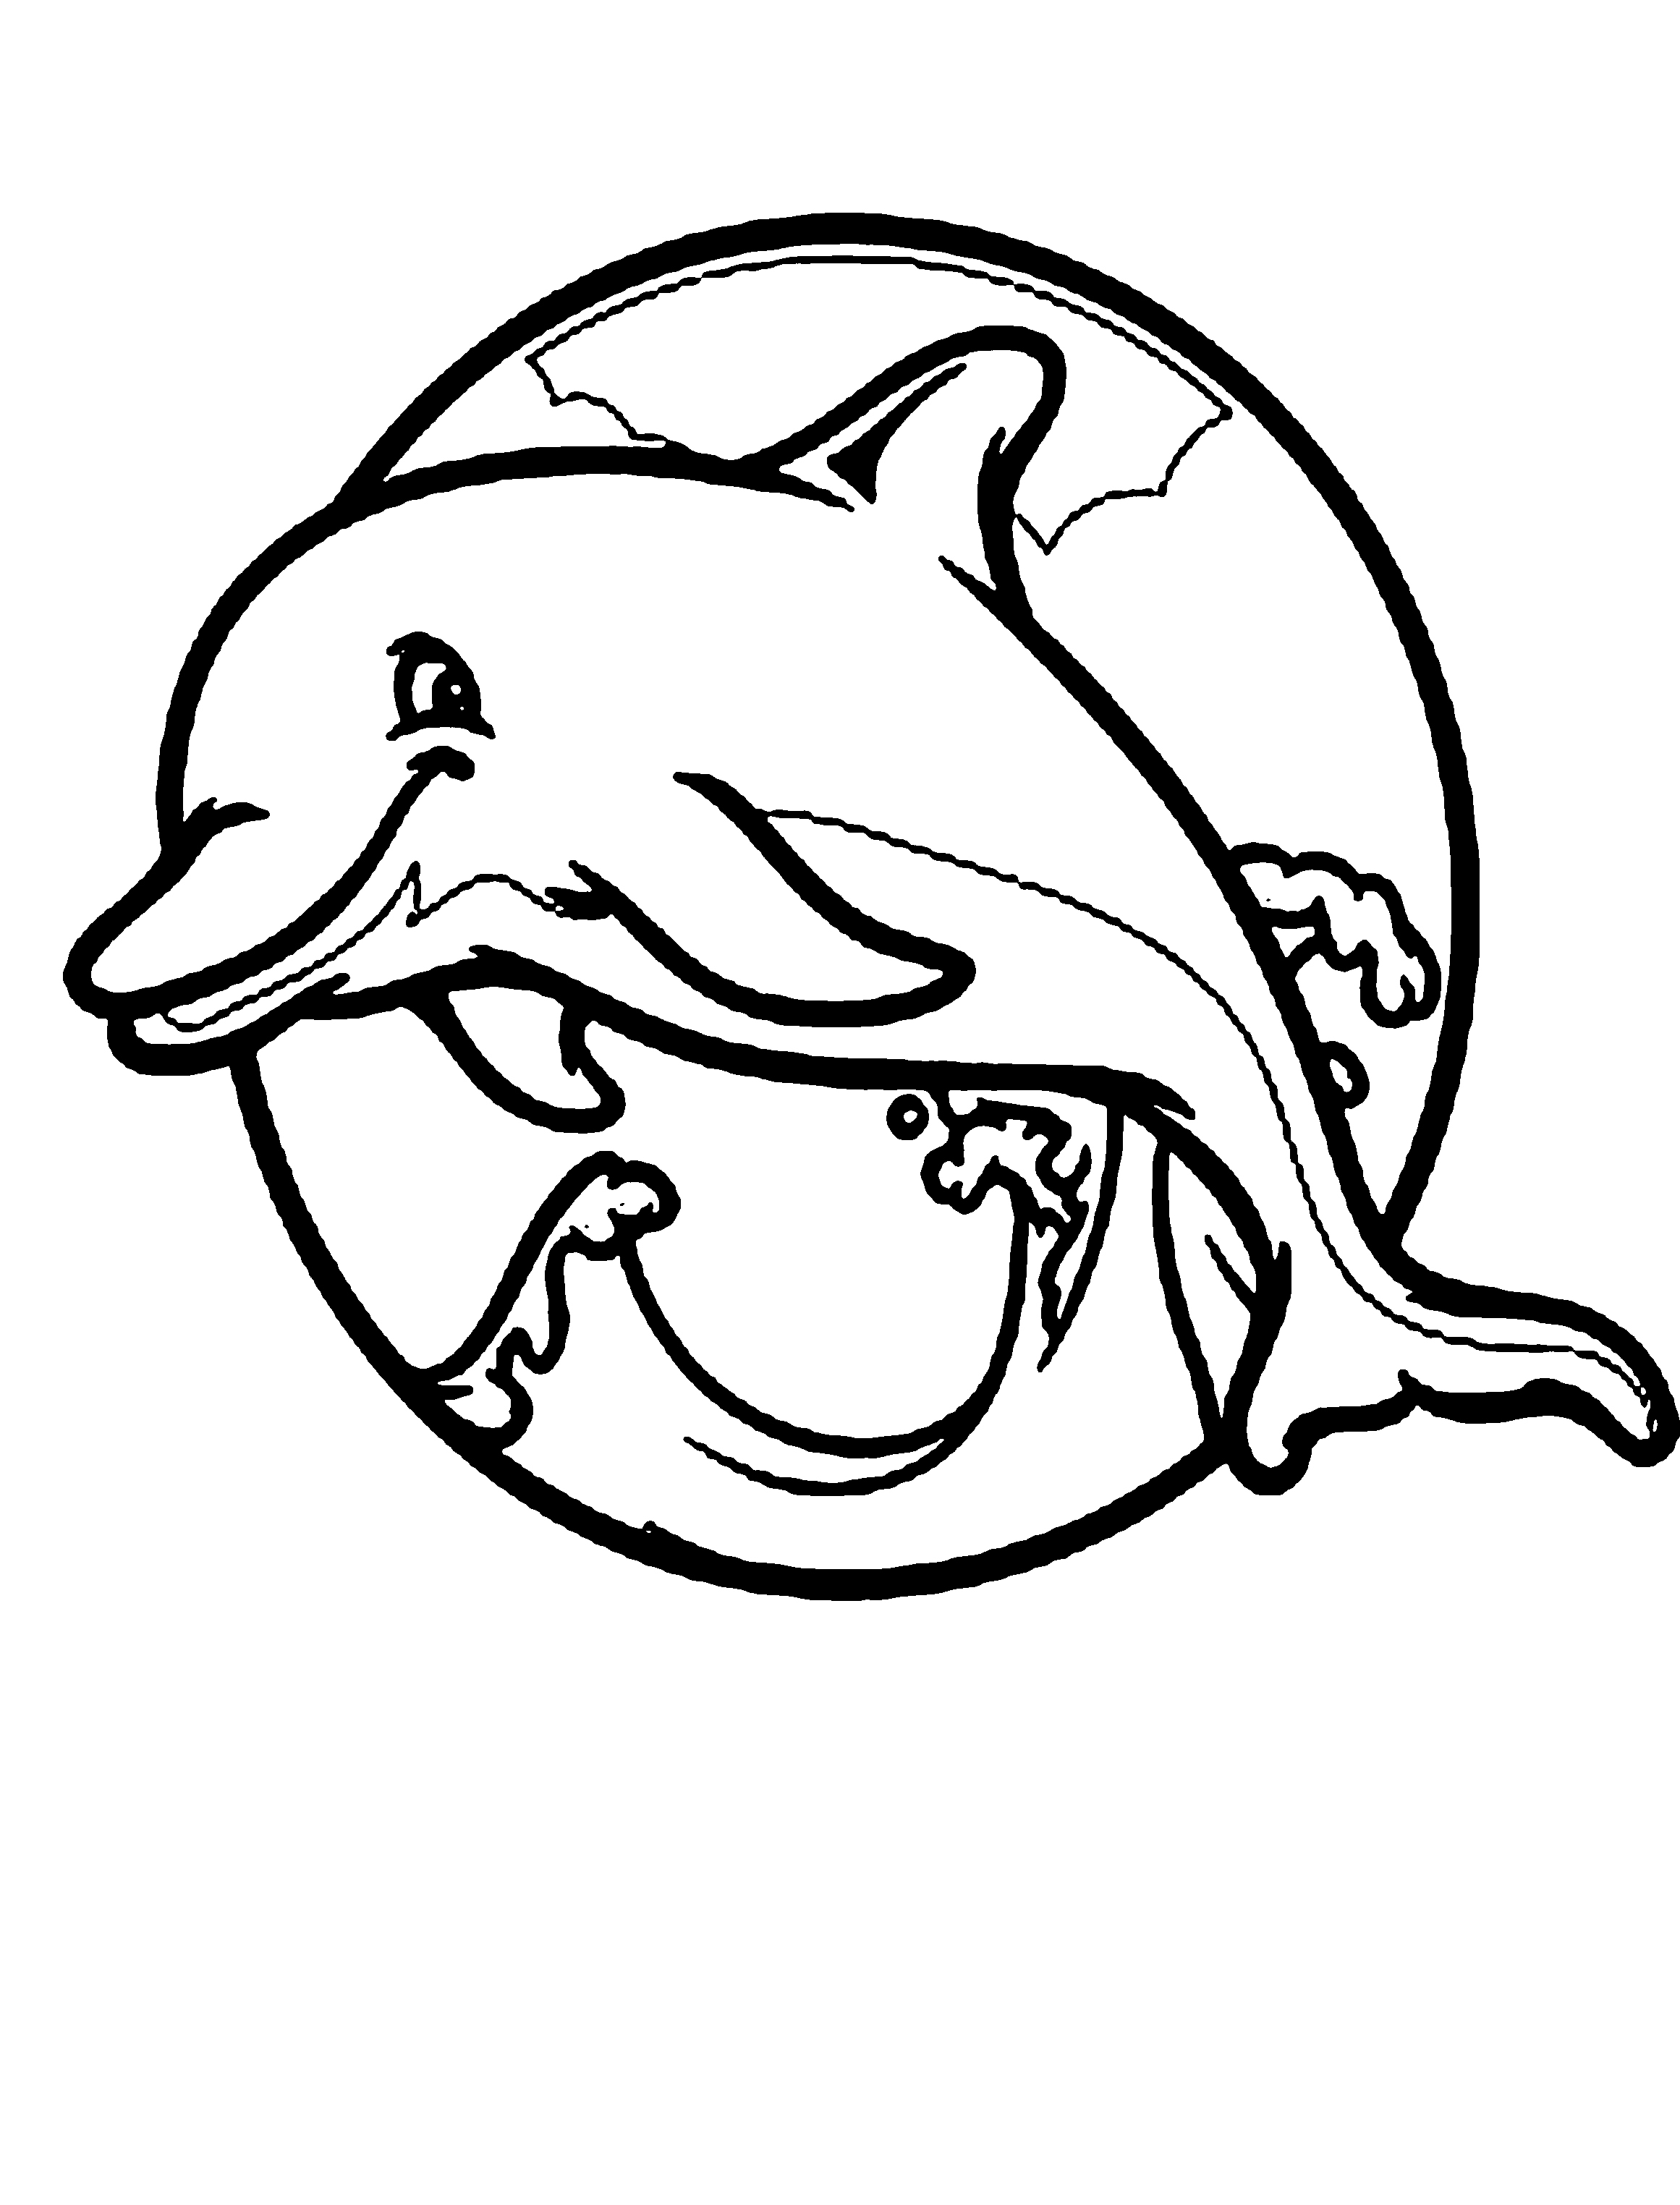 dolphin cartoon coloring pages bottlenose dolphin drawing at getdrawings free download cartoon dolphin pages coloring